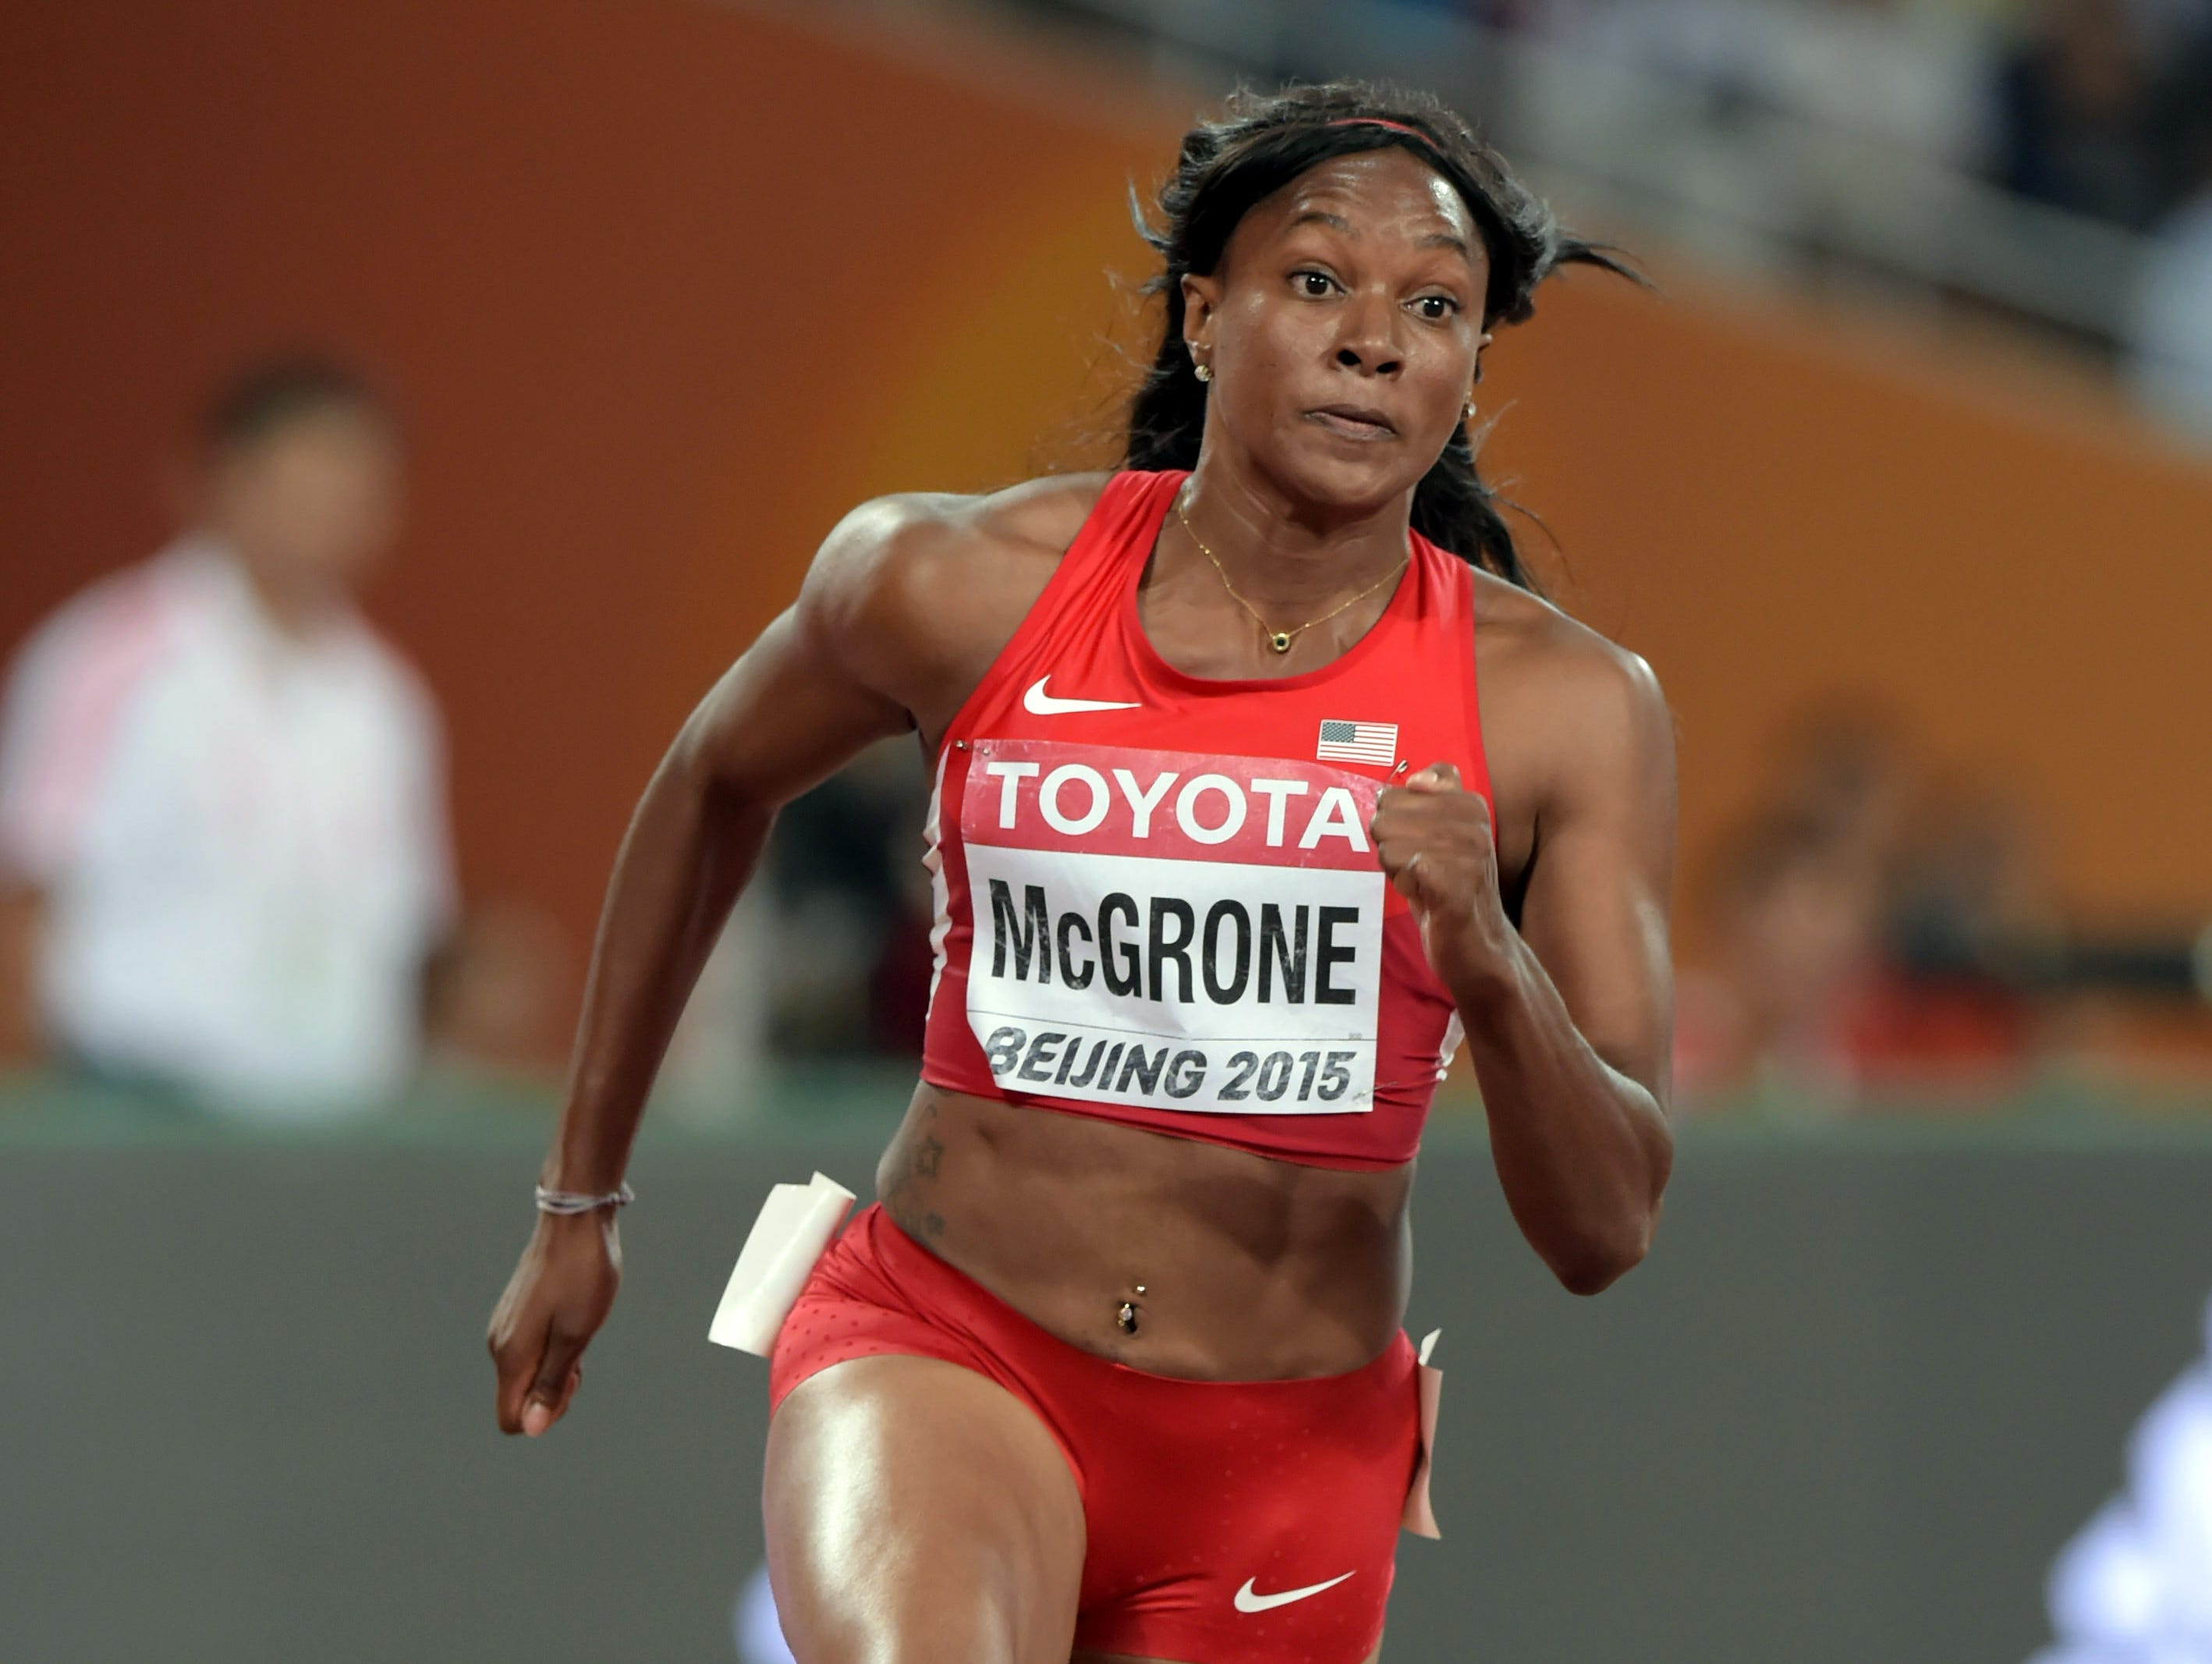 The running career of Candyce McGrone has never followed a smooth path.